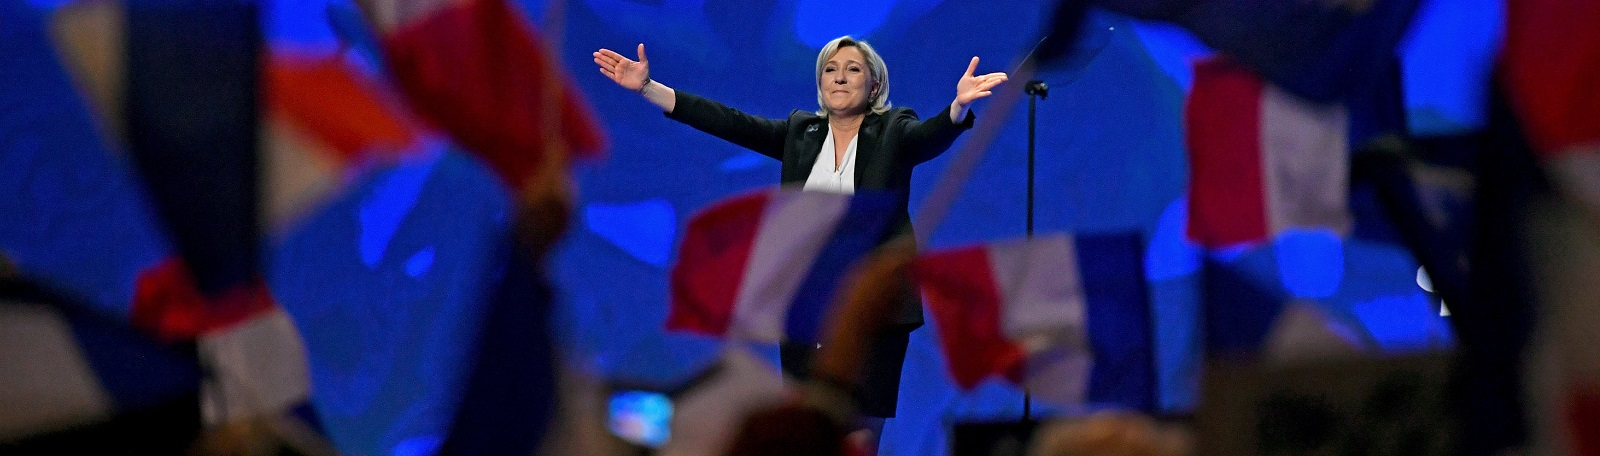 National Front Leader Marine Le Pen at a presidential campaign rally in Lyon on 26 February.  (Photo by Jeff J Mitchell/Getty Images)